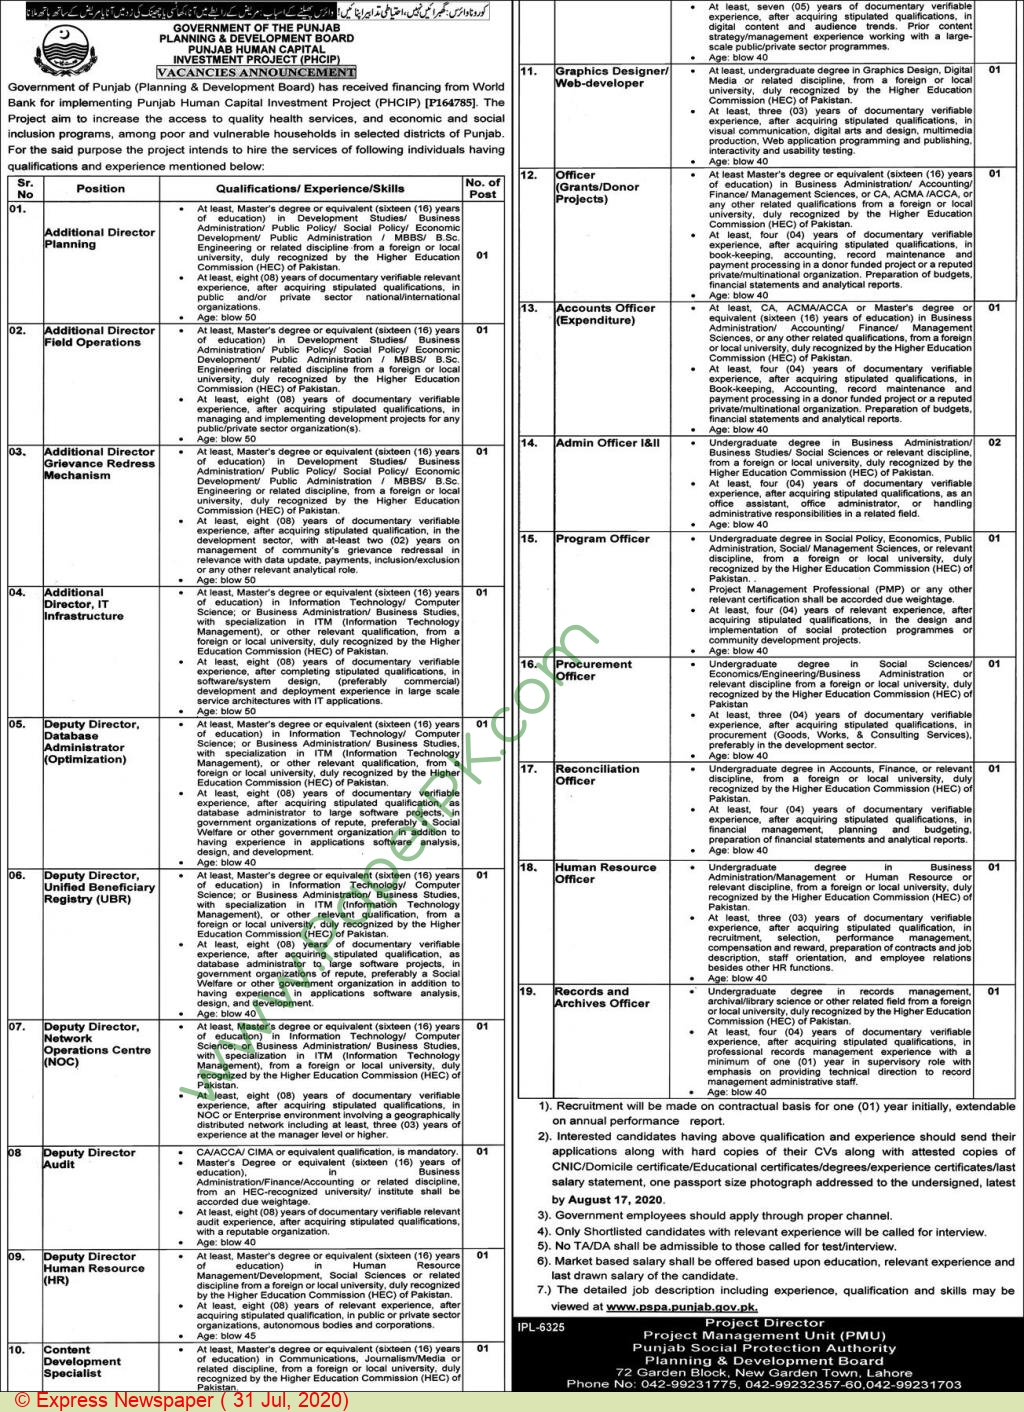 Punjab Social Protection Authority jobs newspaper ad for Reconciliation Officer in Lahore